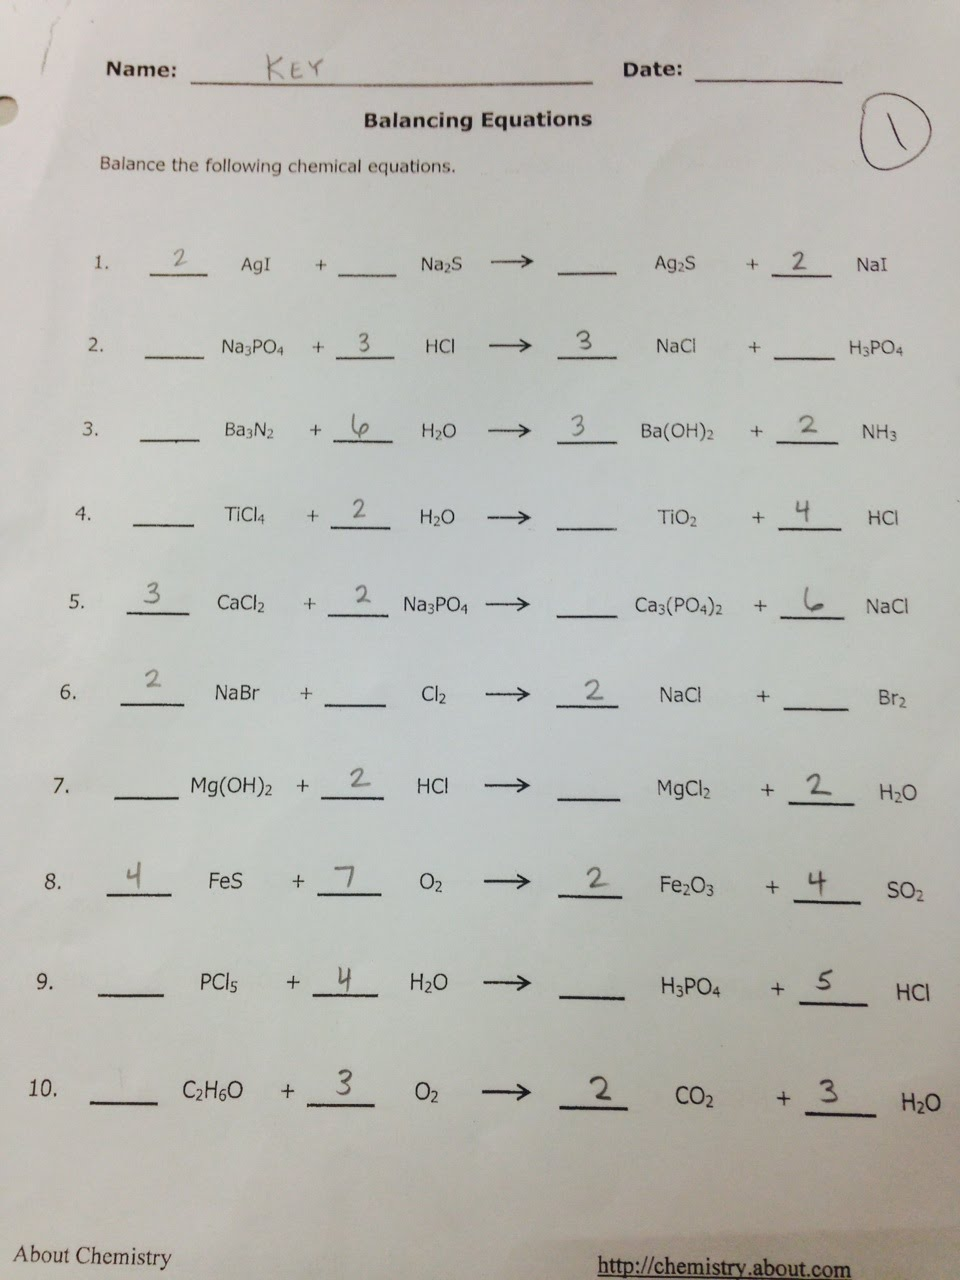 Balancing Equations Worksheet Prentice Hall  144177